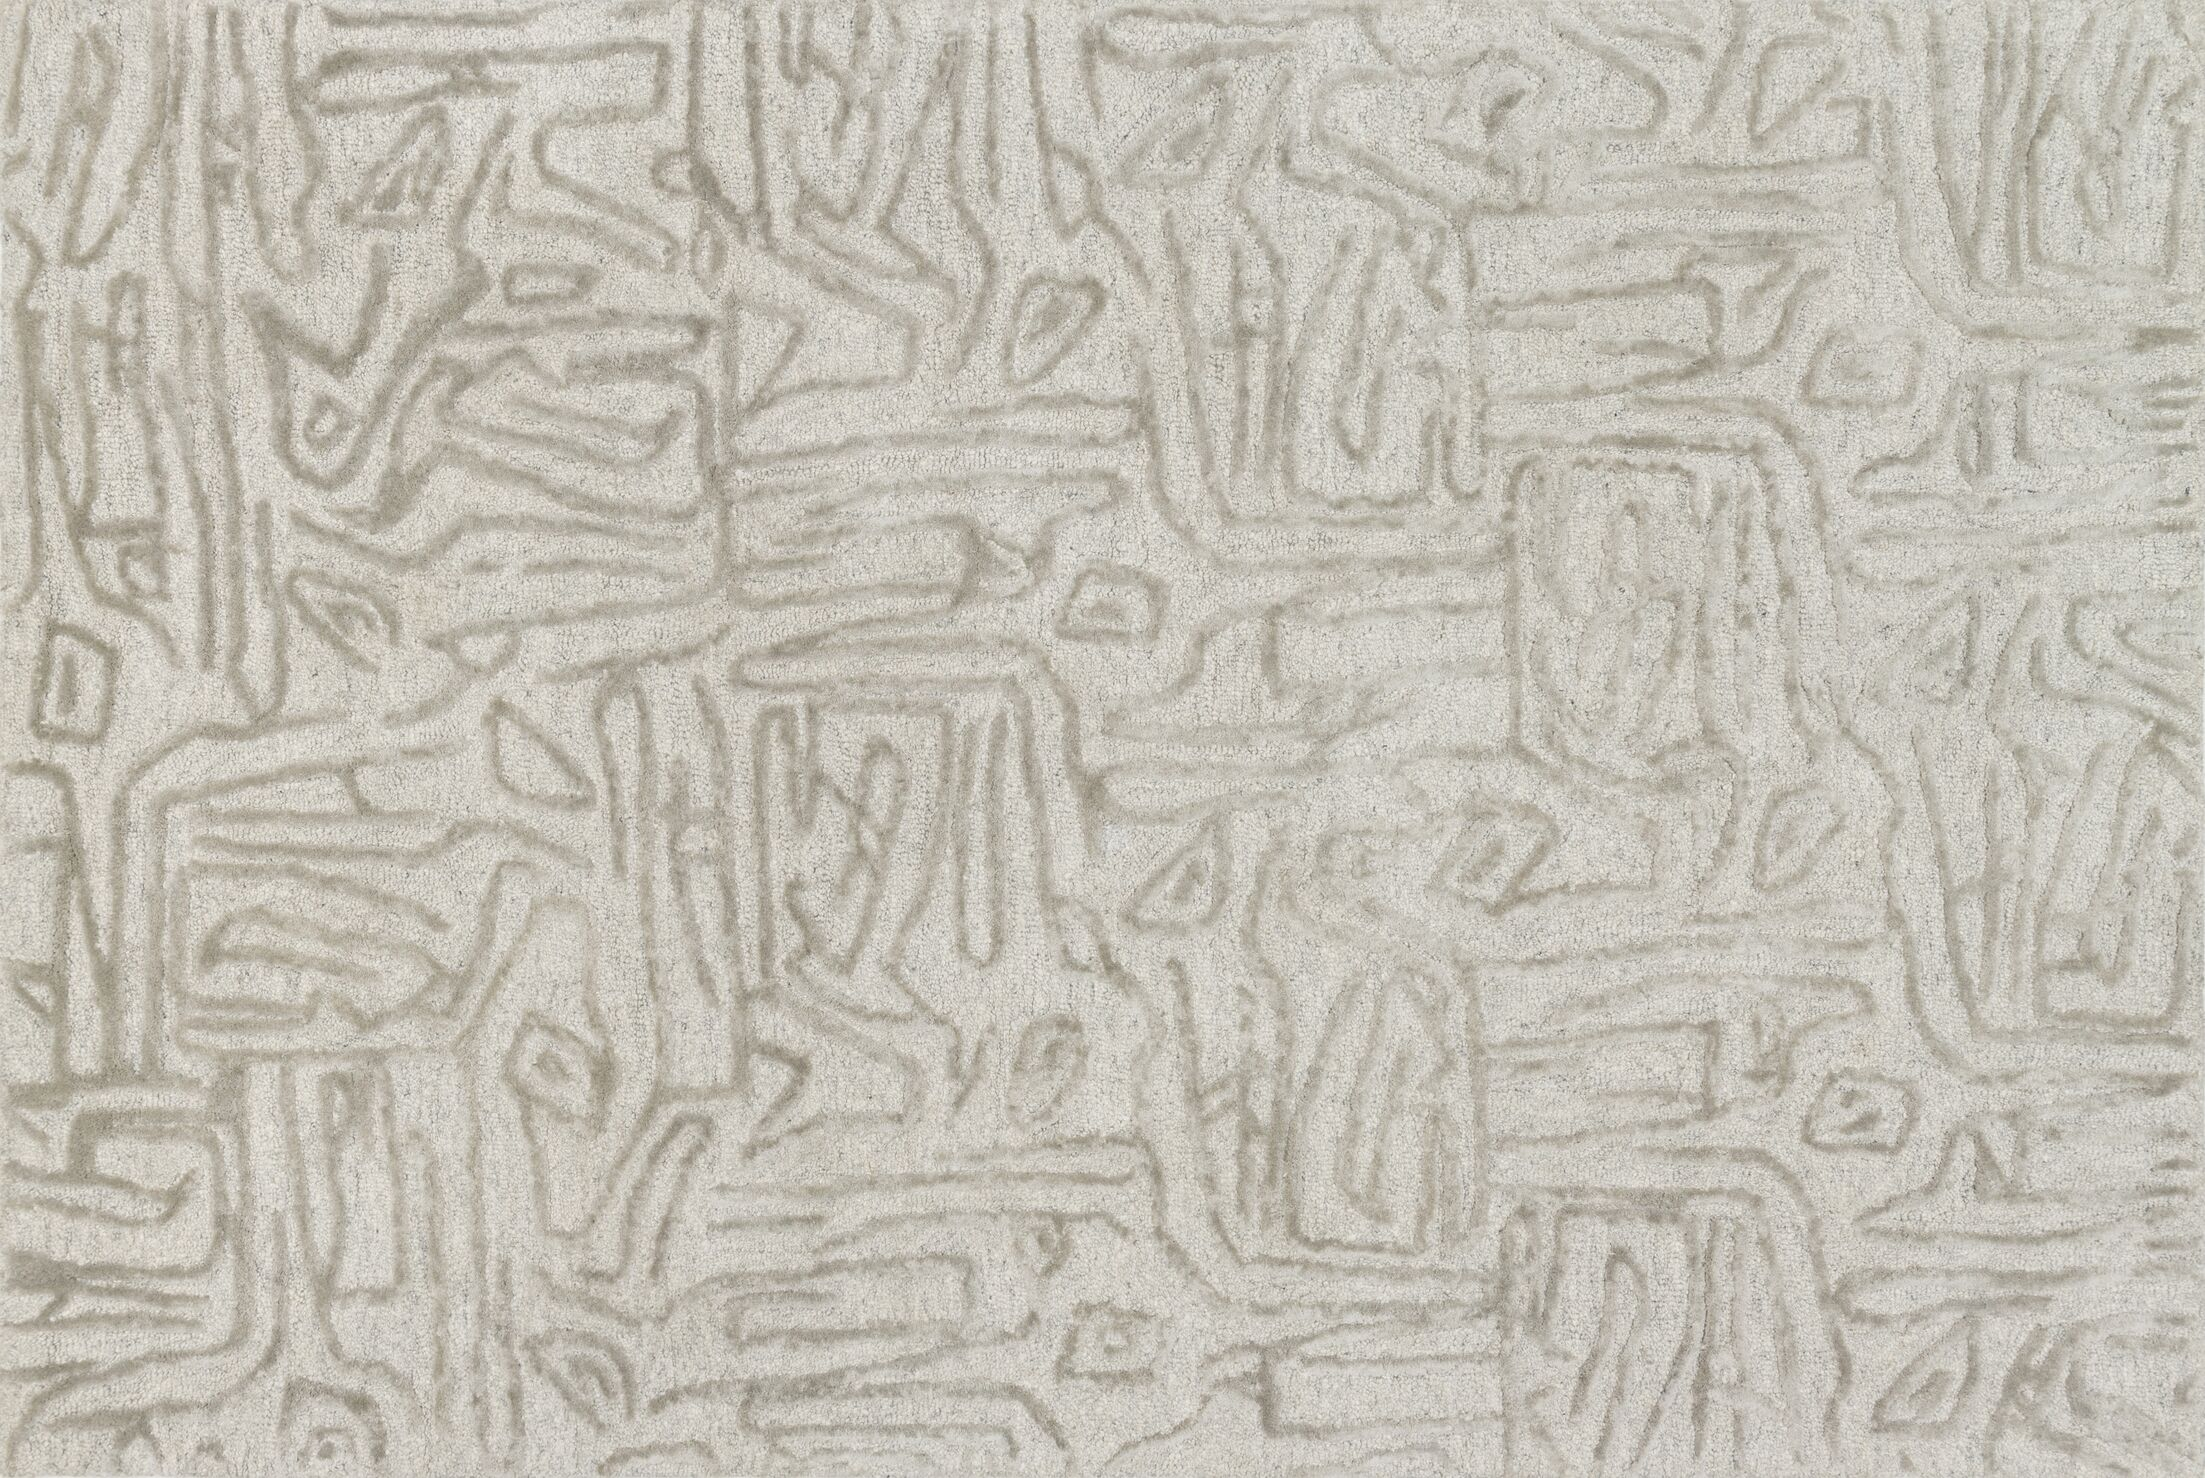 Rusch Hand-Tufted Silver Area Rug Rug Size: Rectangle 9'3